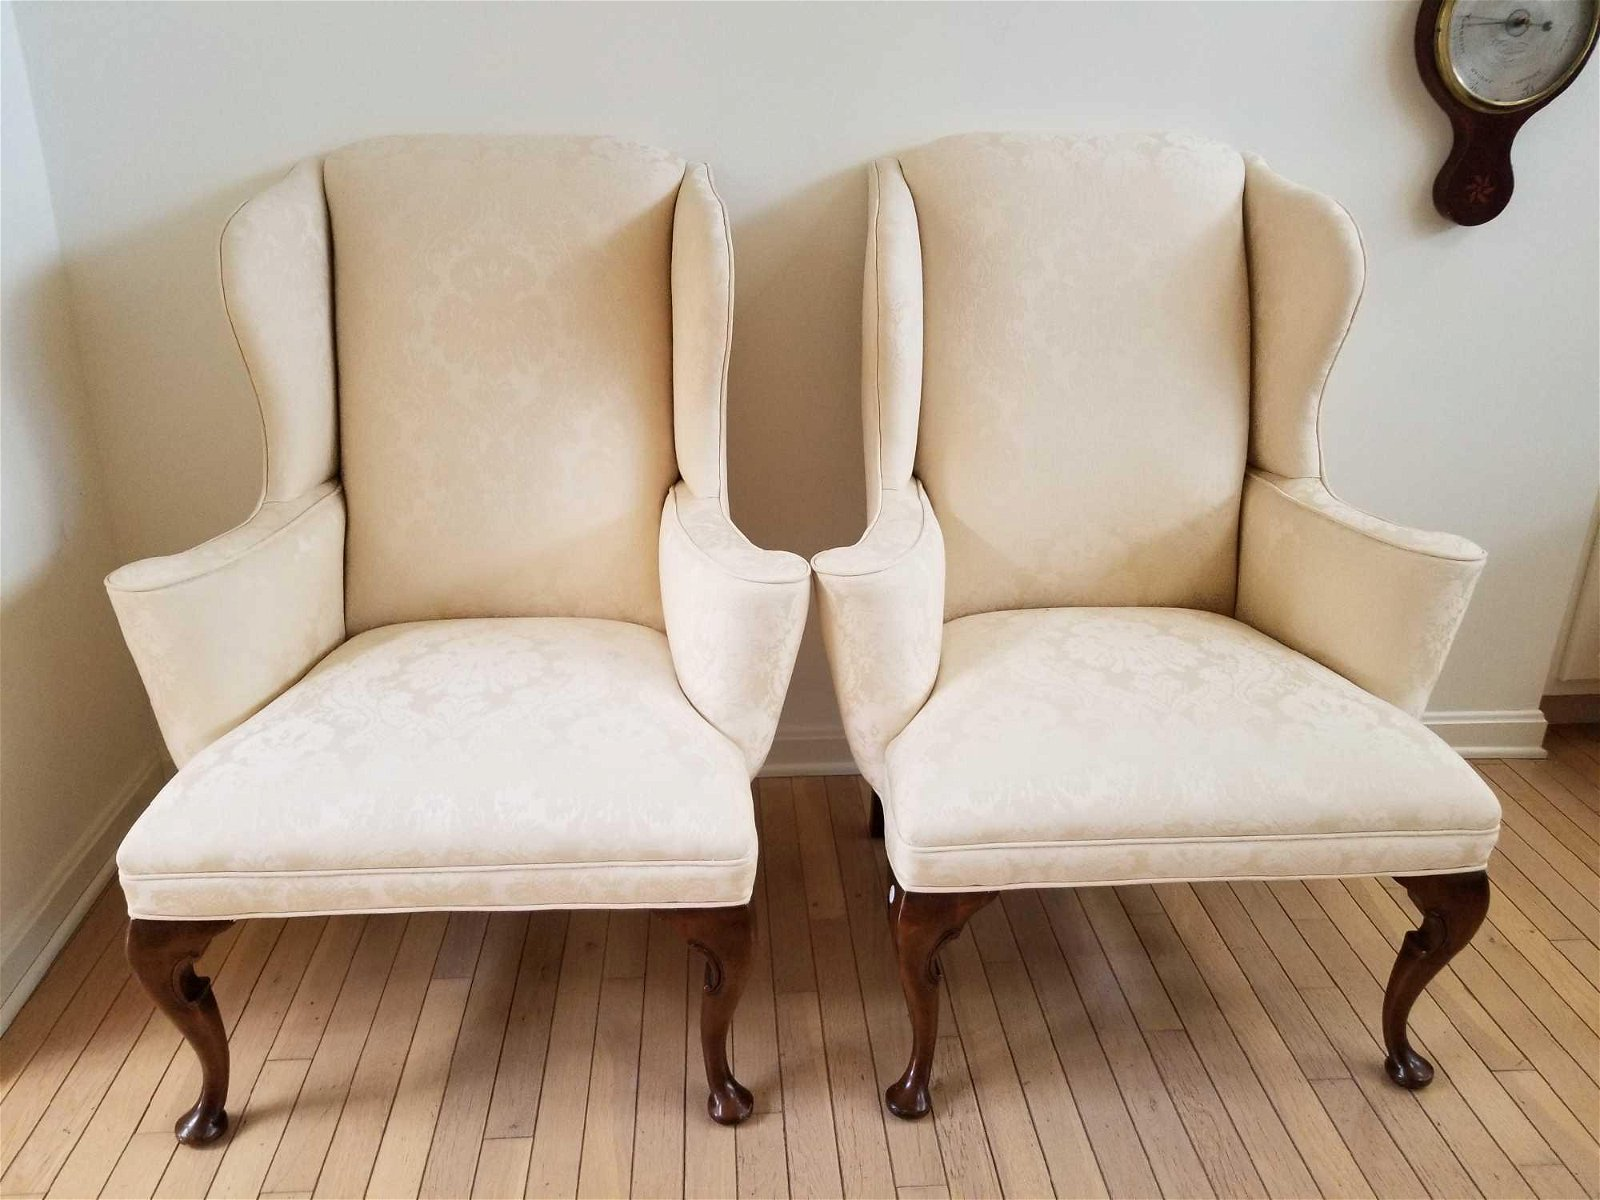 Pair of Antique Upholstered Wing-Back Armchairs